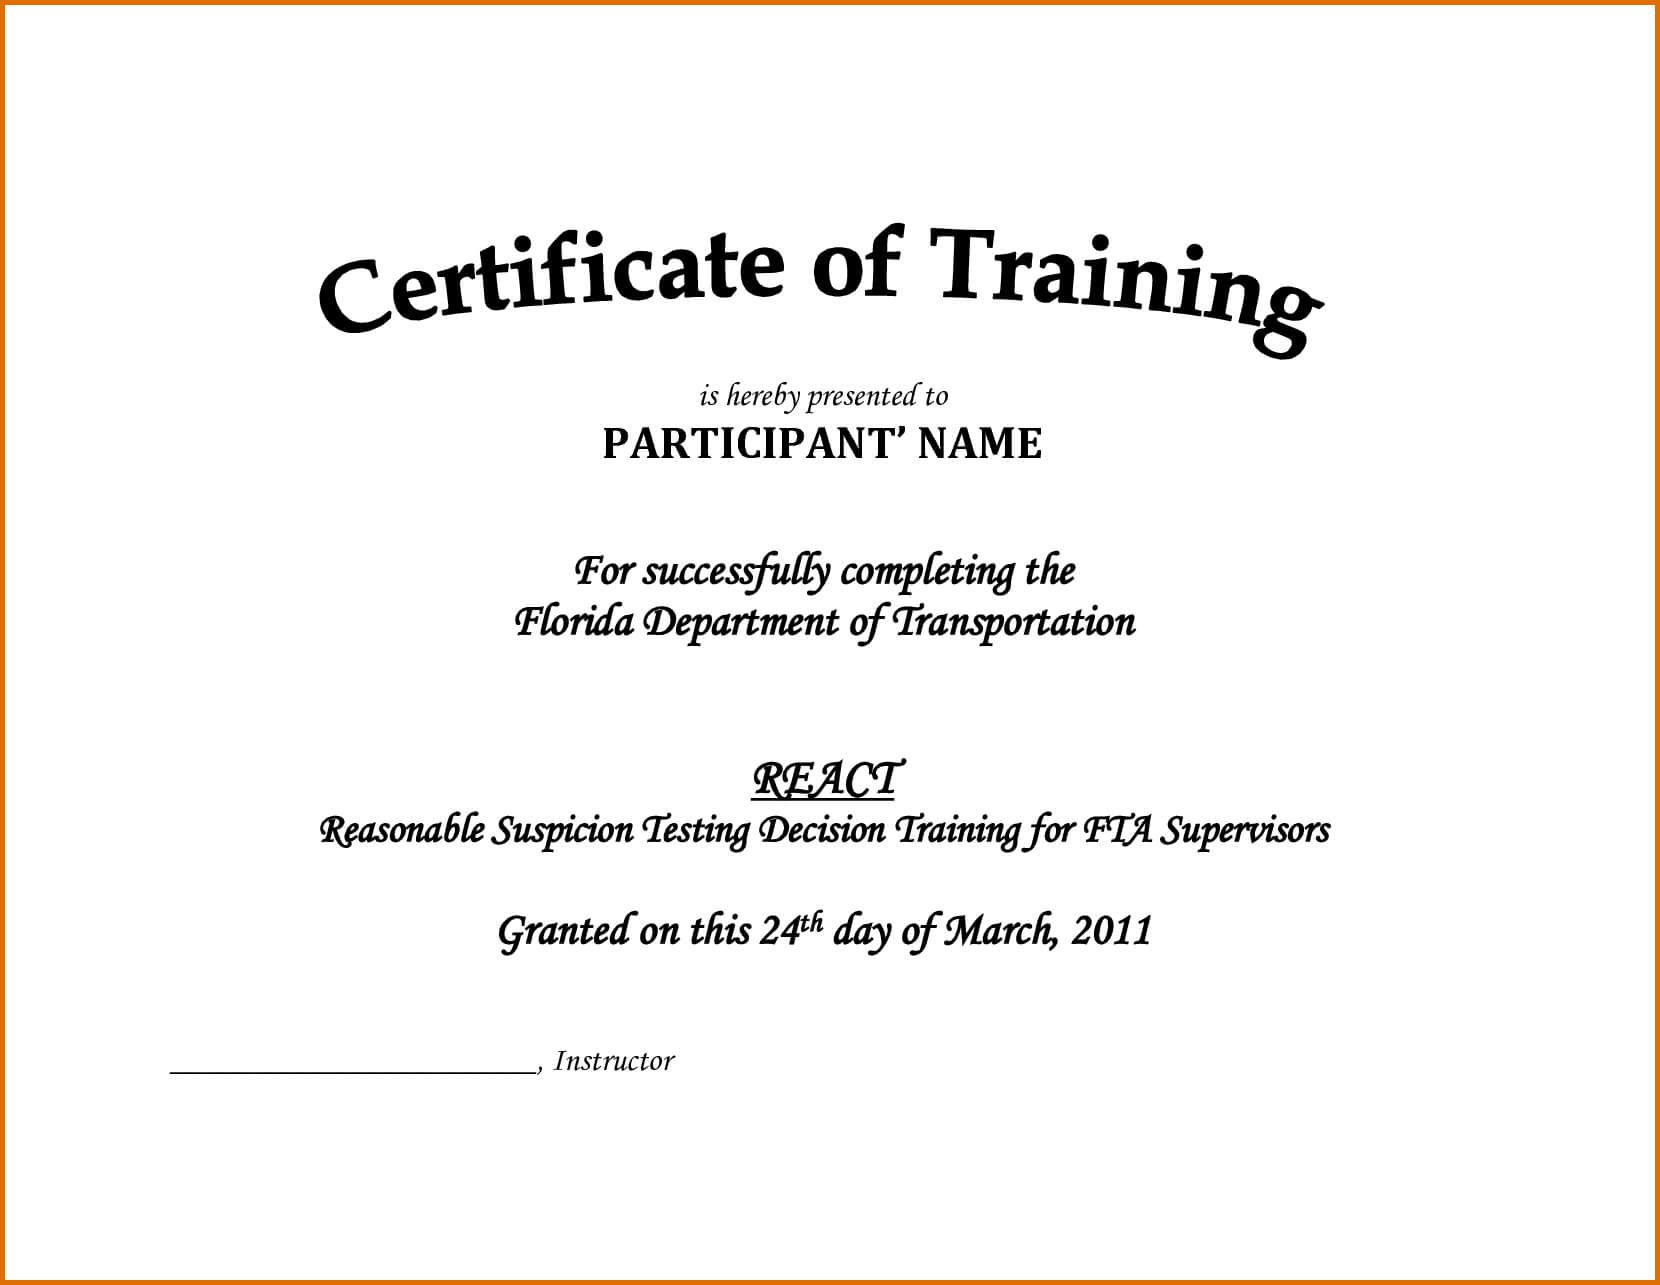 Army-Certificate-Of-Achievement-Template-Money-Lending with regard to Certificate Of Achievement Army Template